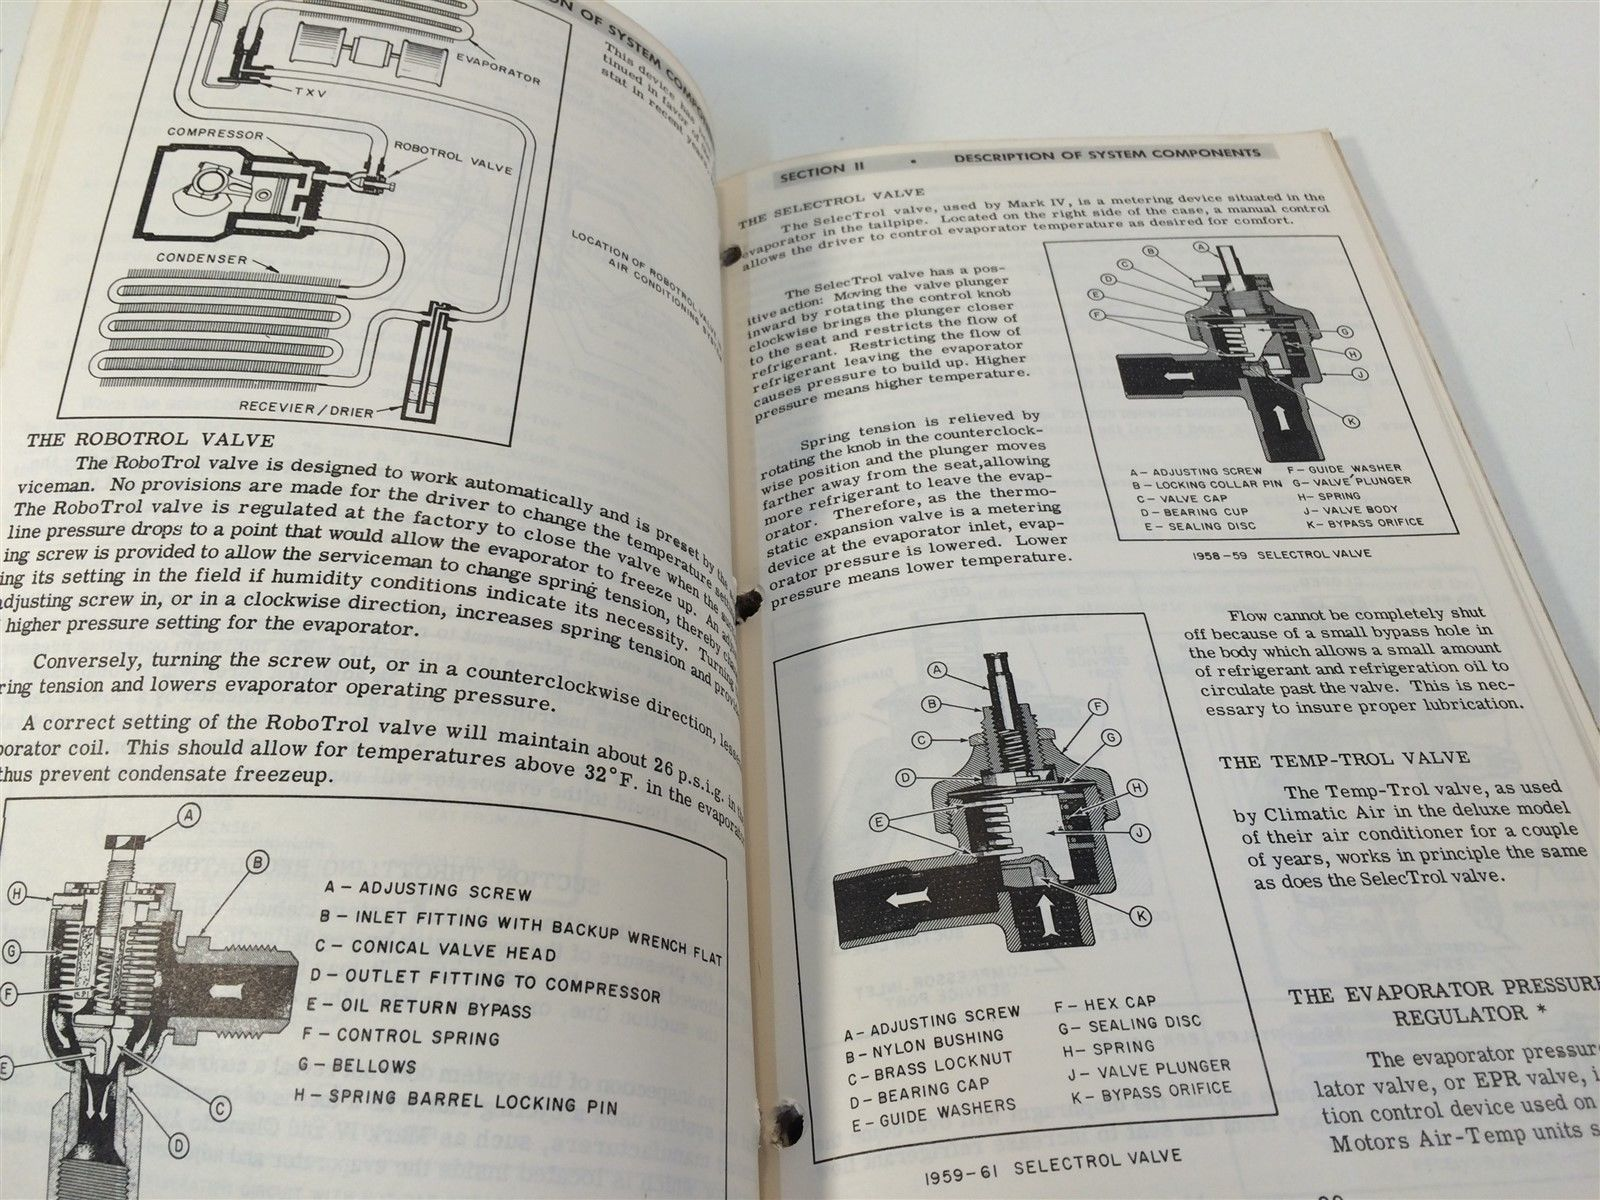 1967 Auto Air-Conditioning Service Manual - Draf Tool Co.